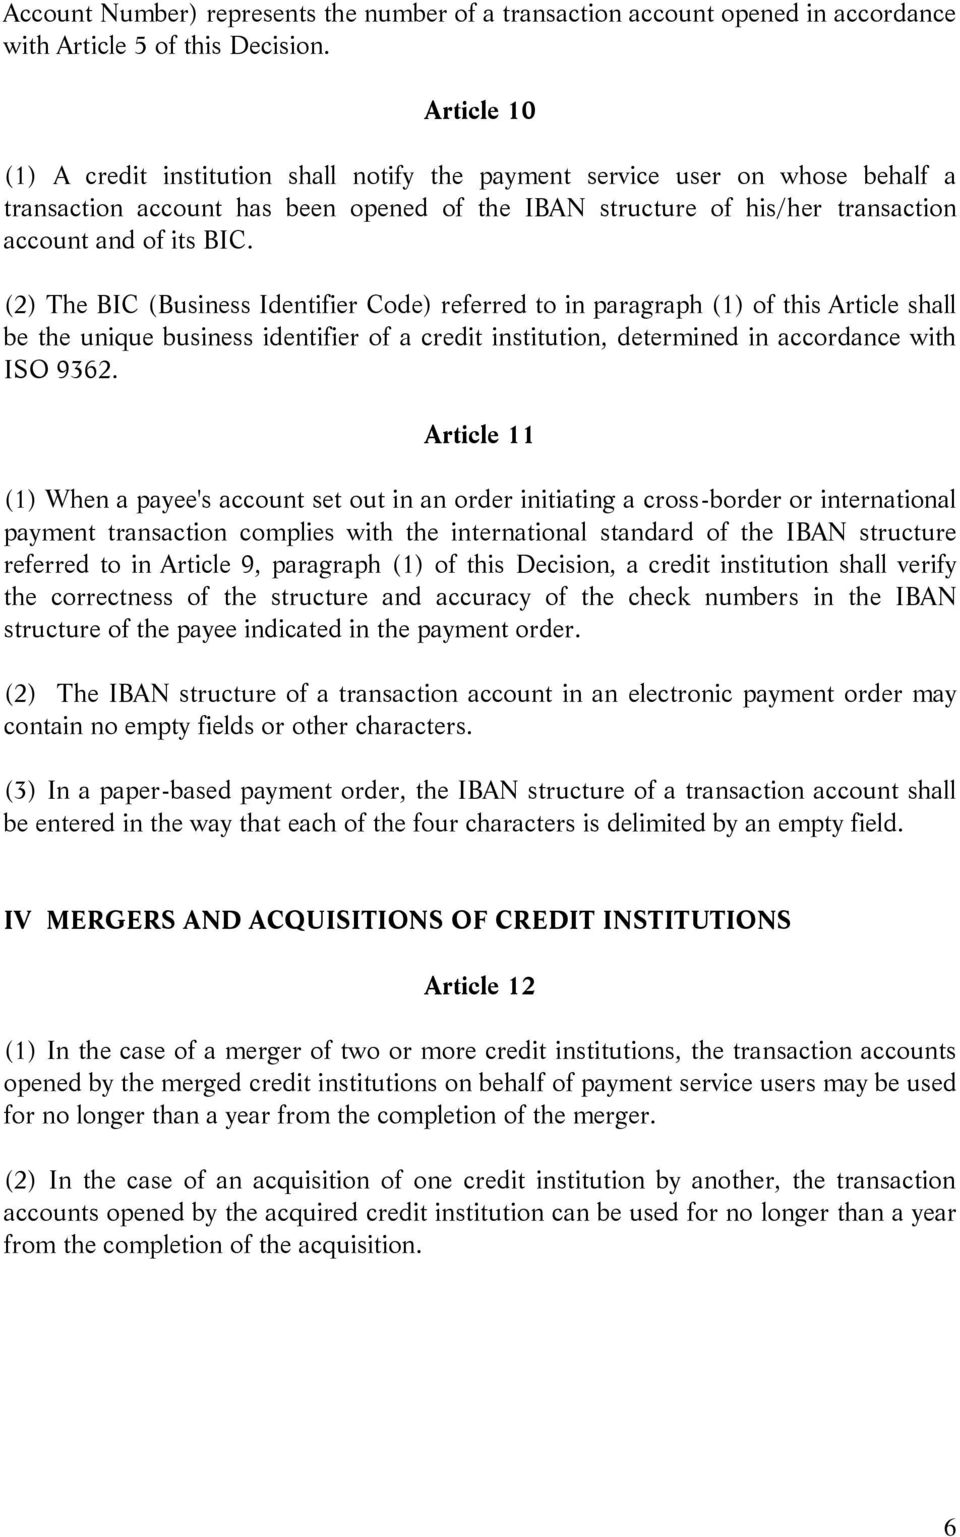 (2) The BIC (Business Identifier Code) referred to in paragraph (1) of this Article shall be the unique business identifier of a credit institution, determined in accordance with ISO 9362.